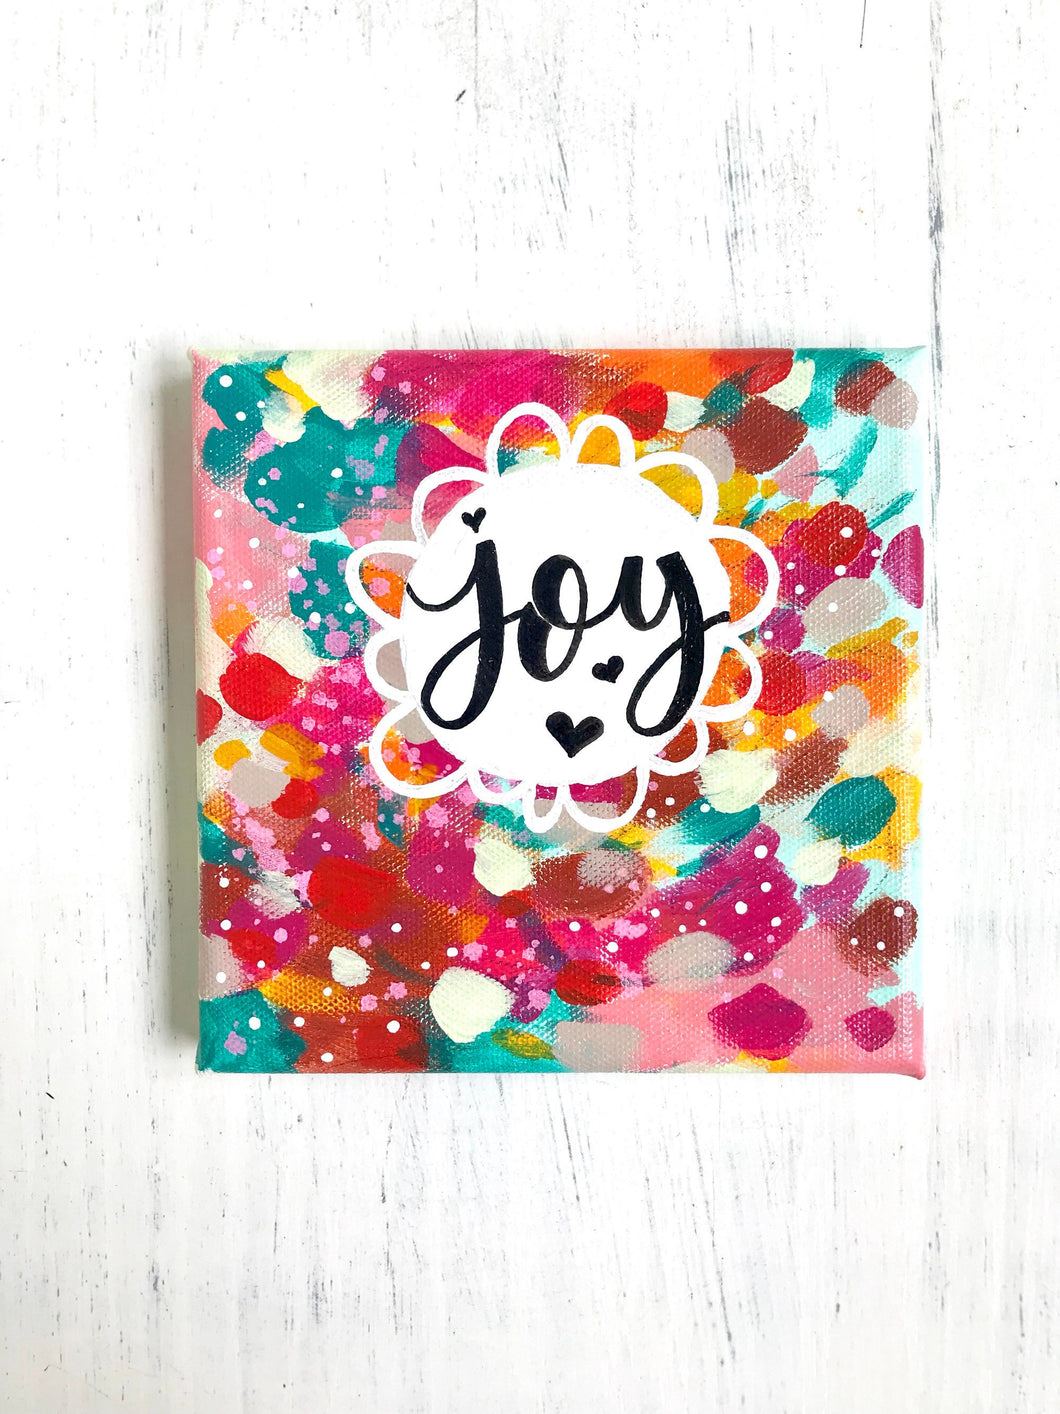 Joy / Vibrant Fall Inspired Original Painting on 6x6 inch Canvas / Bright Autumn Colors / Joyful Art / Thoughtful Gift - Bethany Joy Art